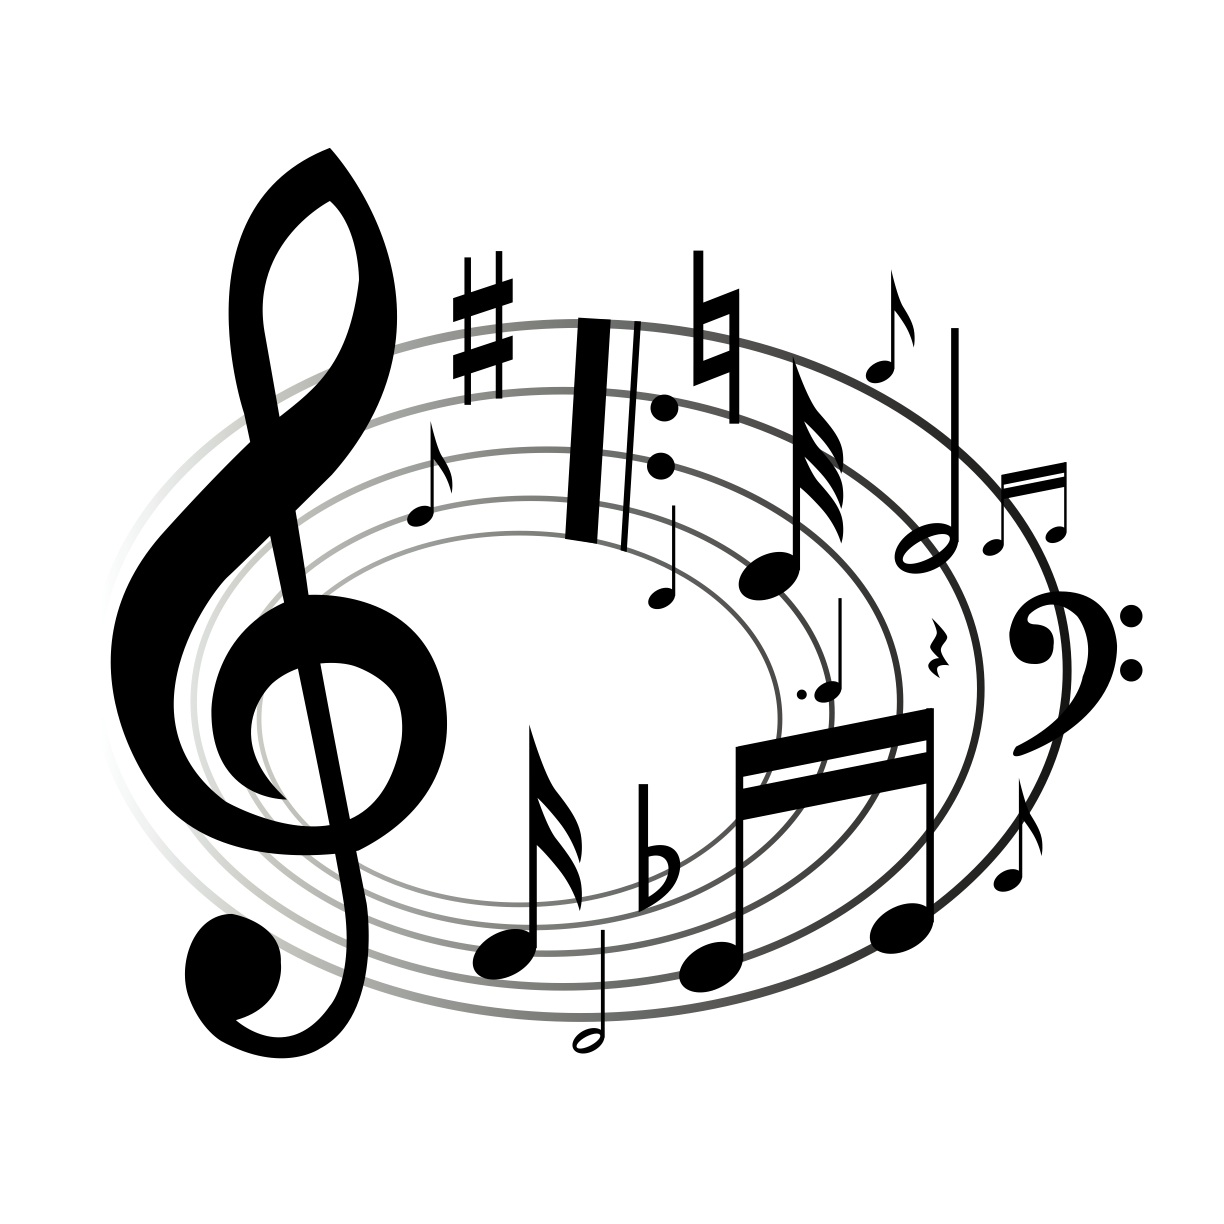 Let's Talk about MS: Play that funky music